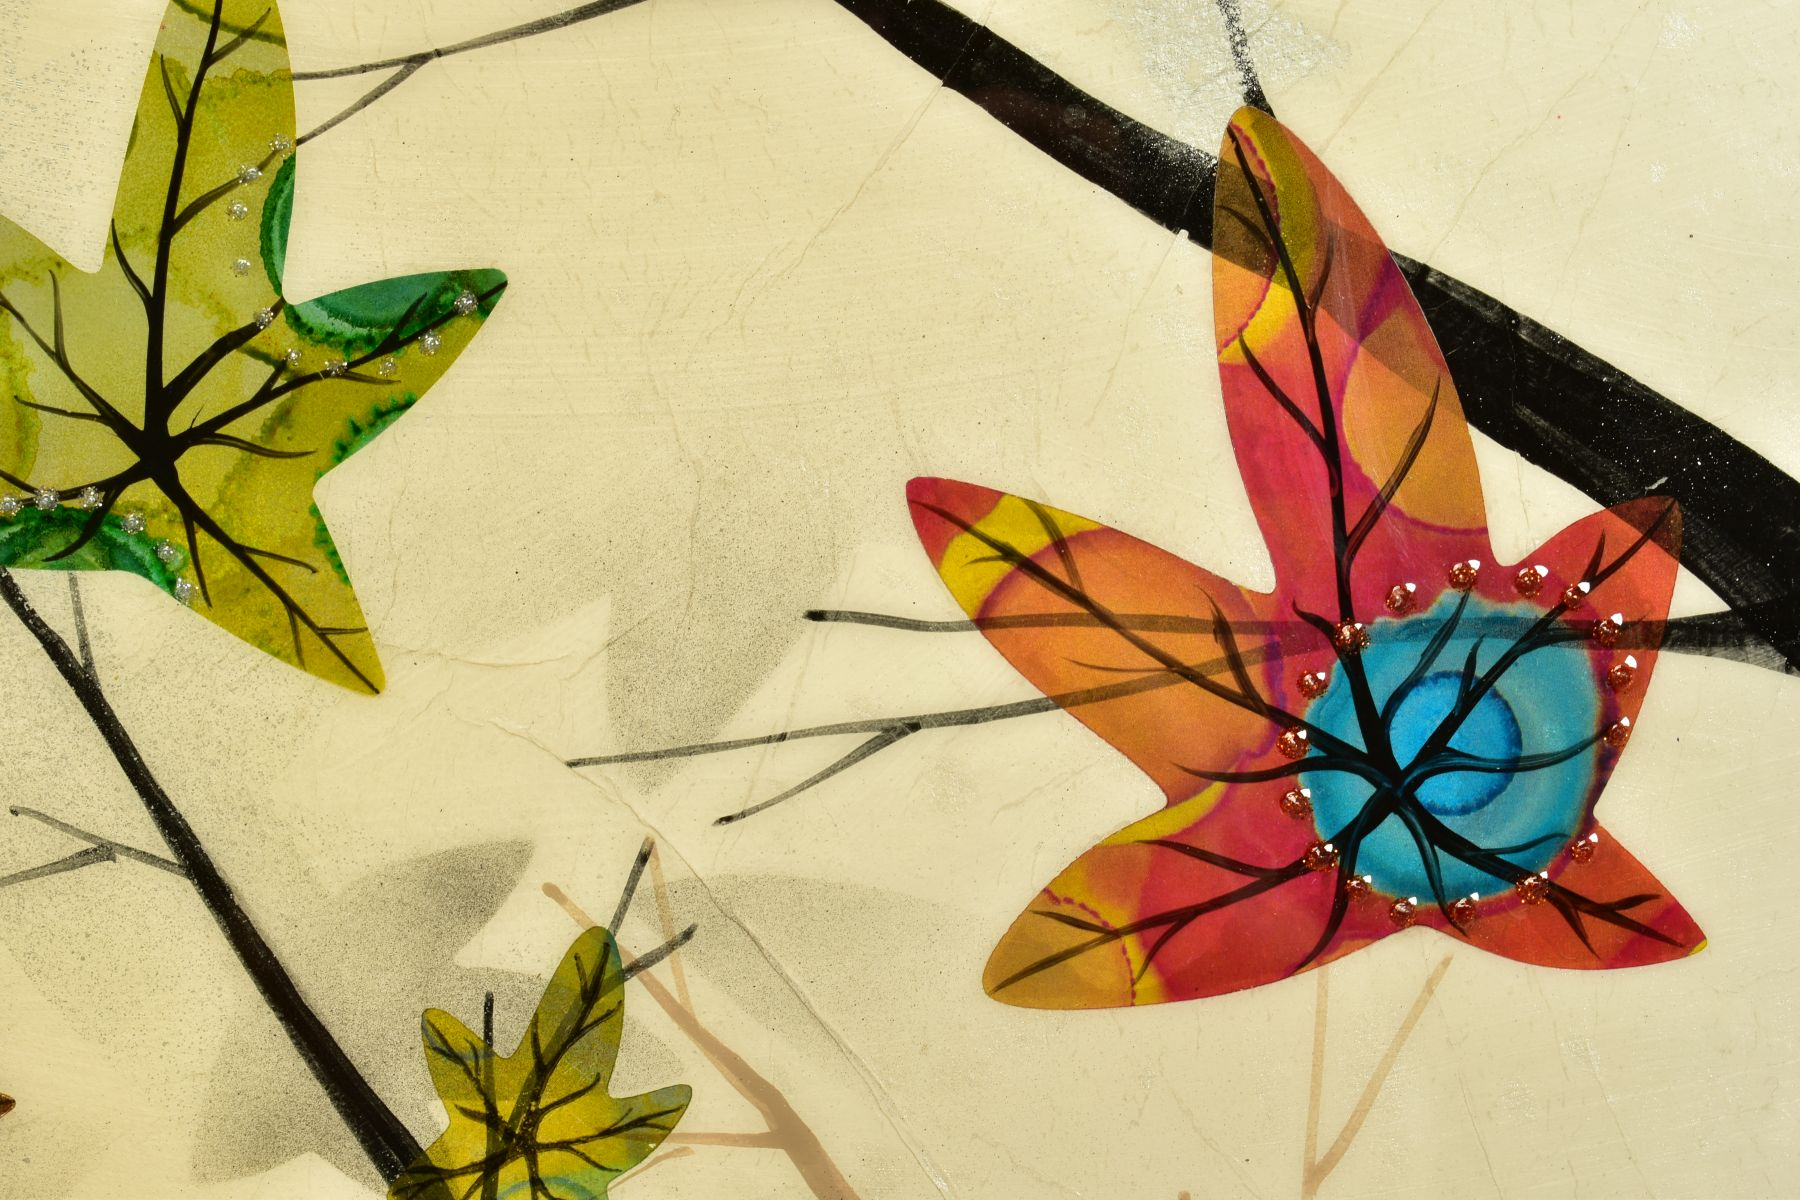 CHLOE NUGENT (BRITISH CONTEMPORARY), 'Woodland Jewels VI', colourful leaves falling from trees, - Image 4 of 6